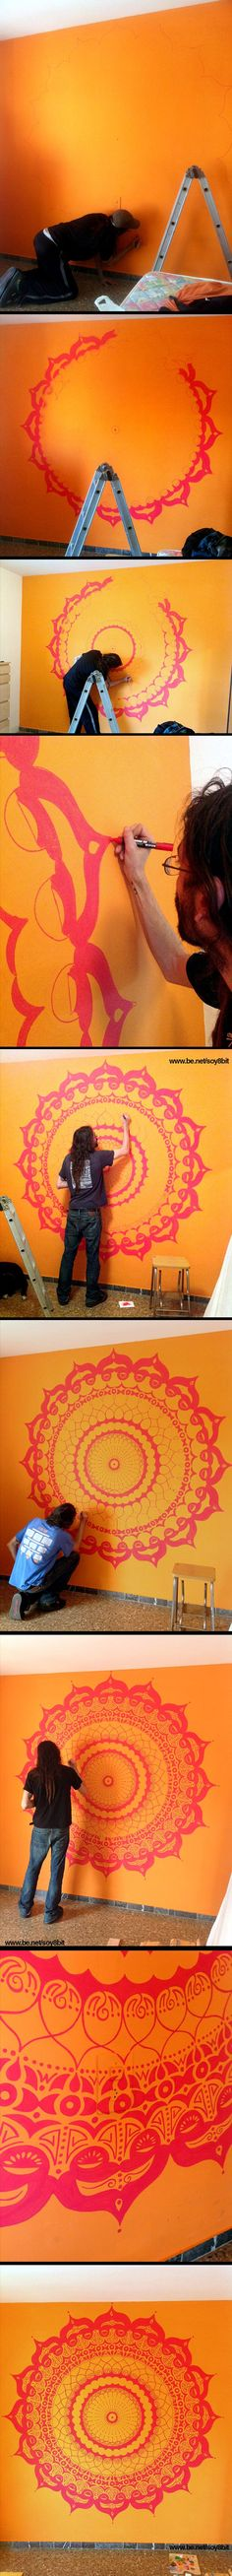 Mandala Wall Painting by Héctor Sánchez www.be.net/soy8bit: